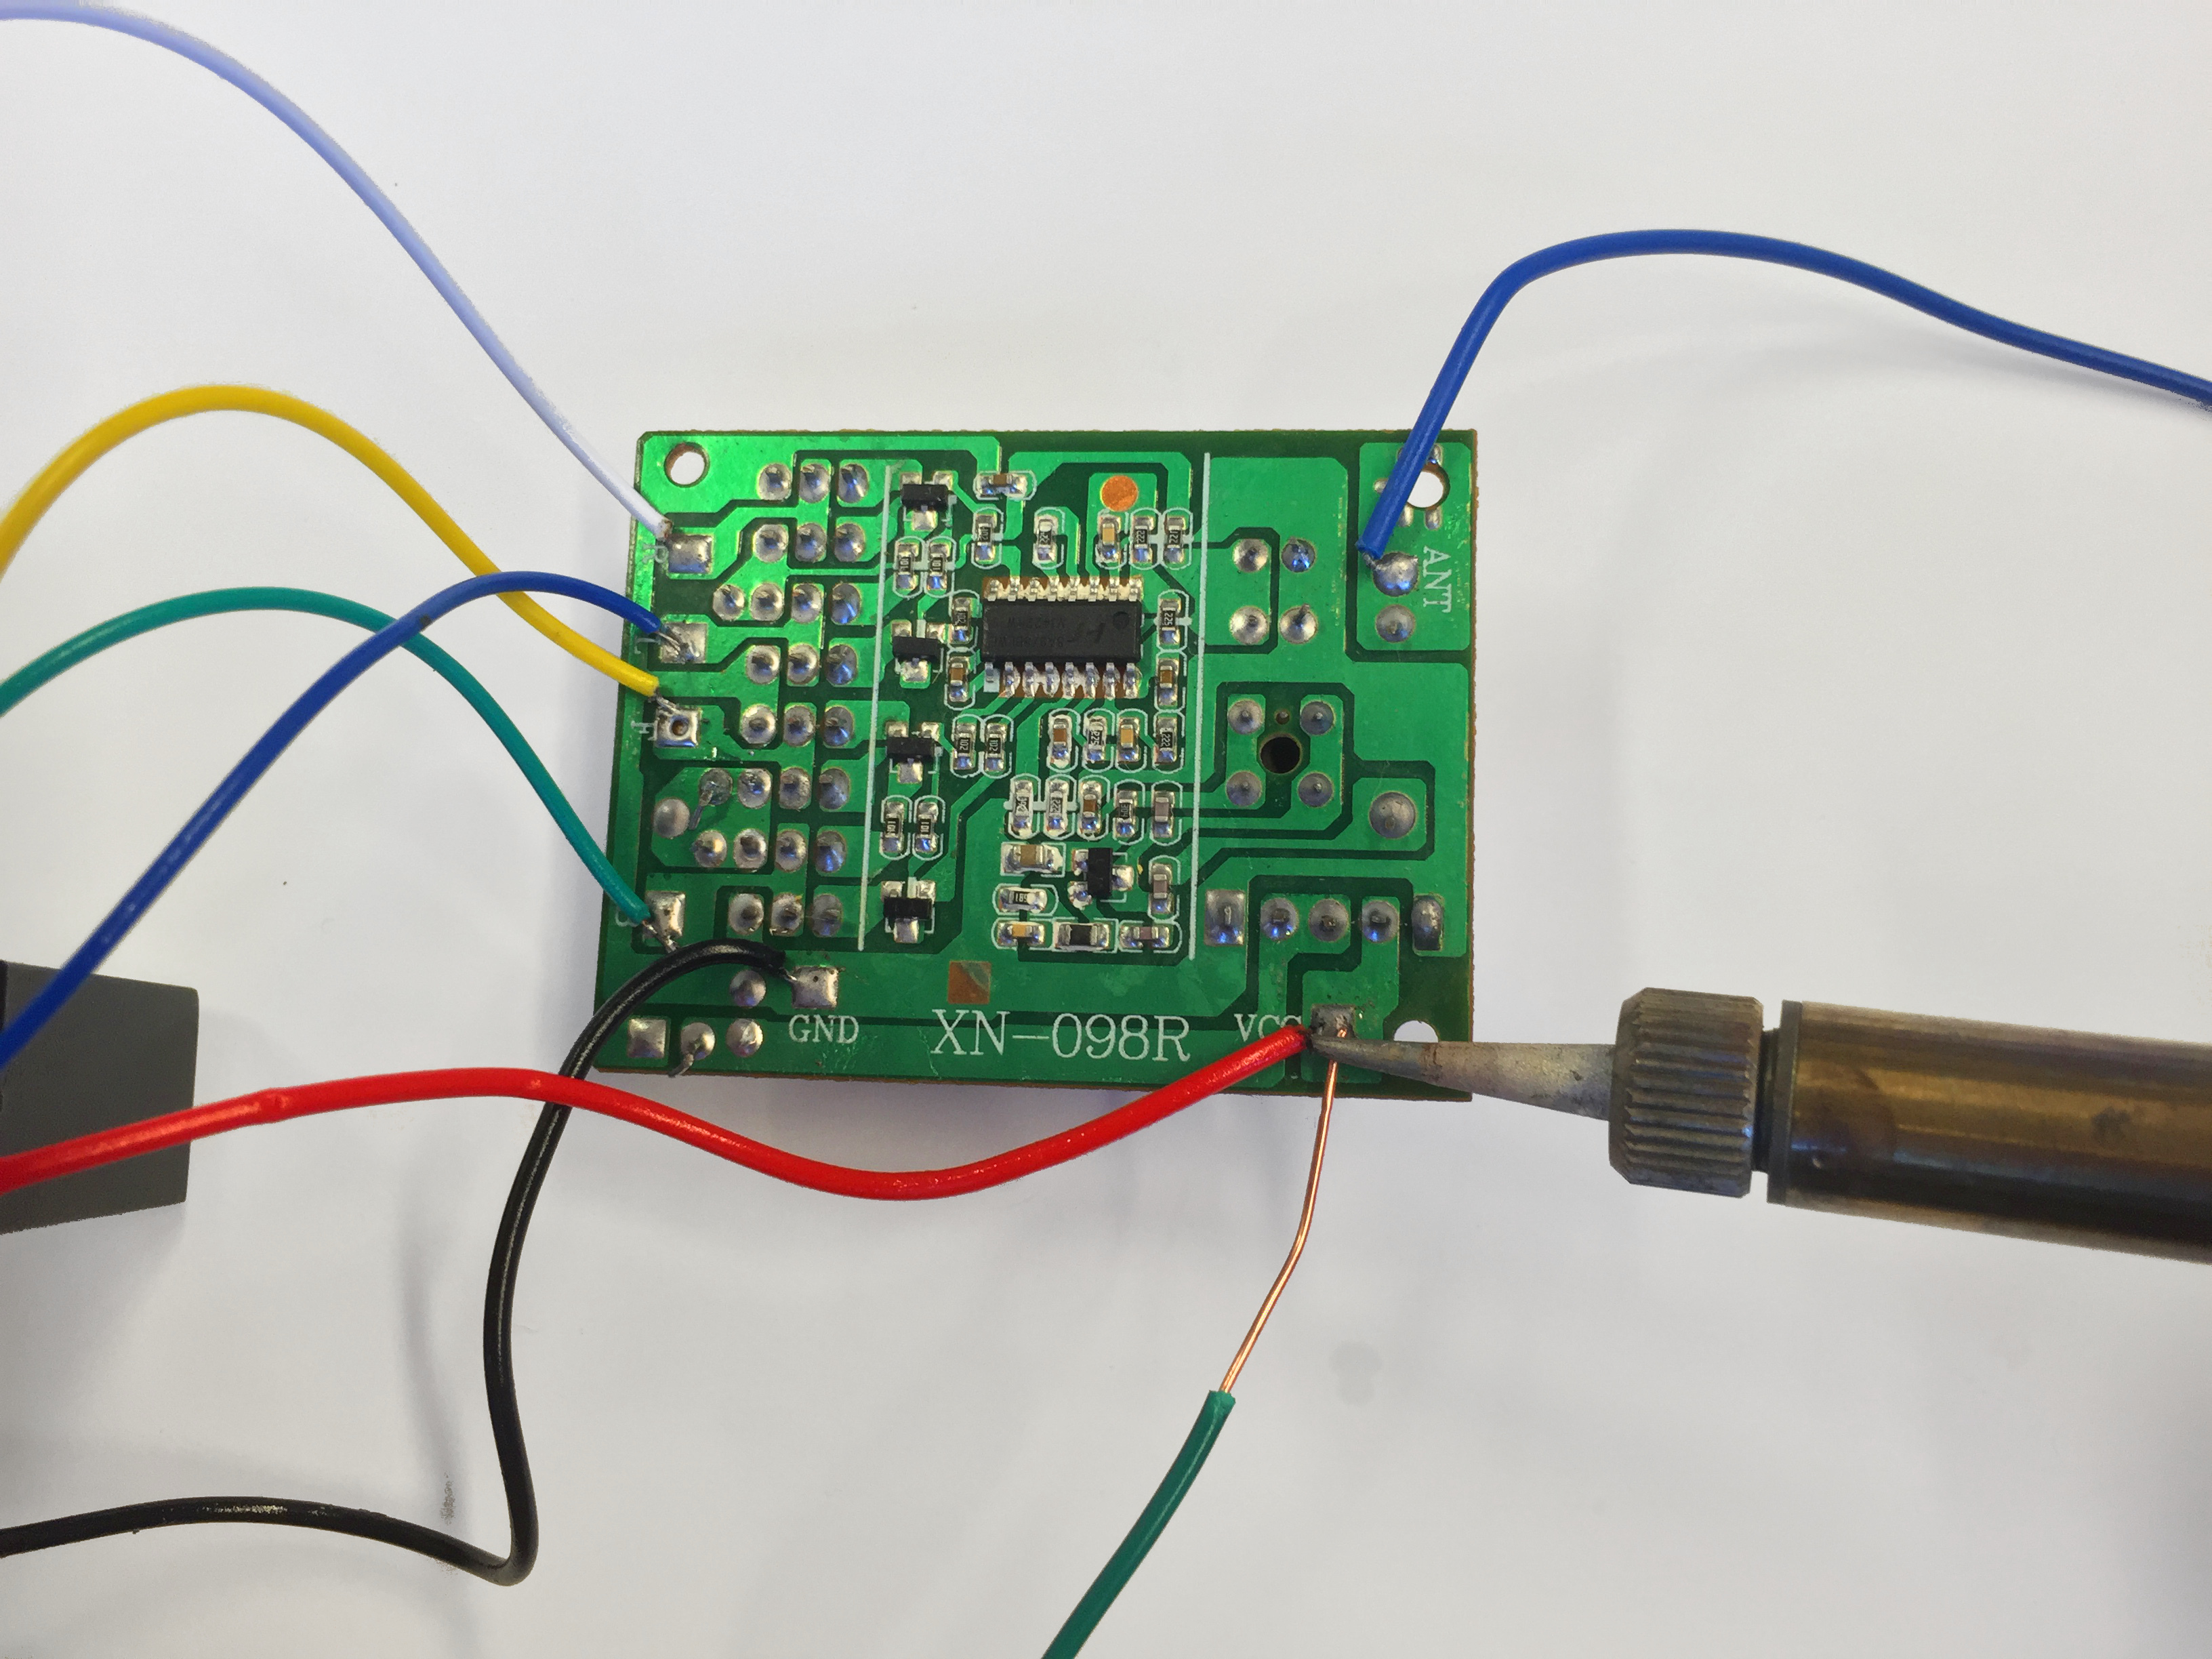 Rc Circuit Board Guide And Troubleshooting Of Wiring Diagram Receiver Pcb Quadcopter Spare Parts New Ebay Geardup Ford Mustang Gt Car Replacement Ifixit Rh Com Buy Online For Sale